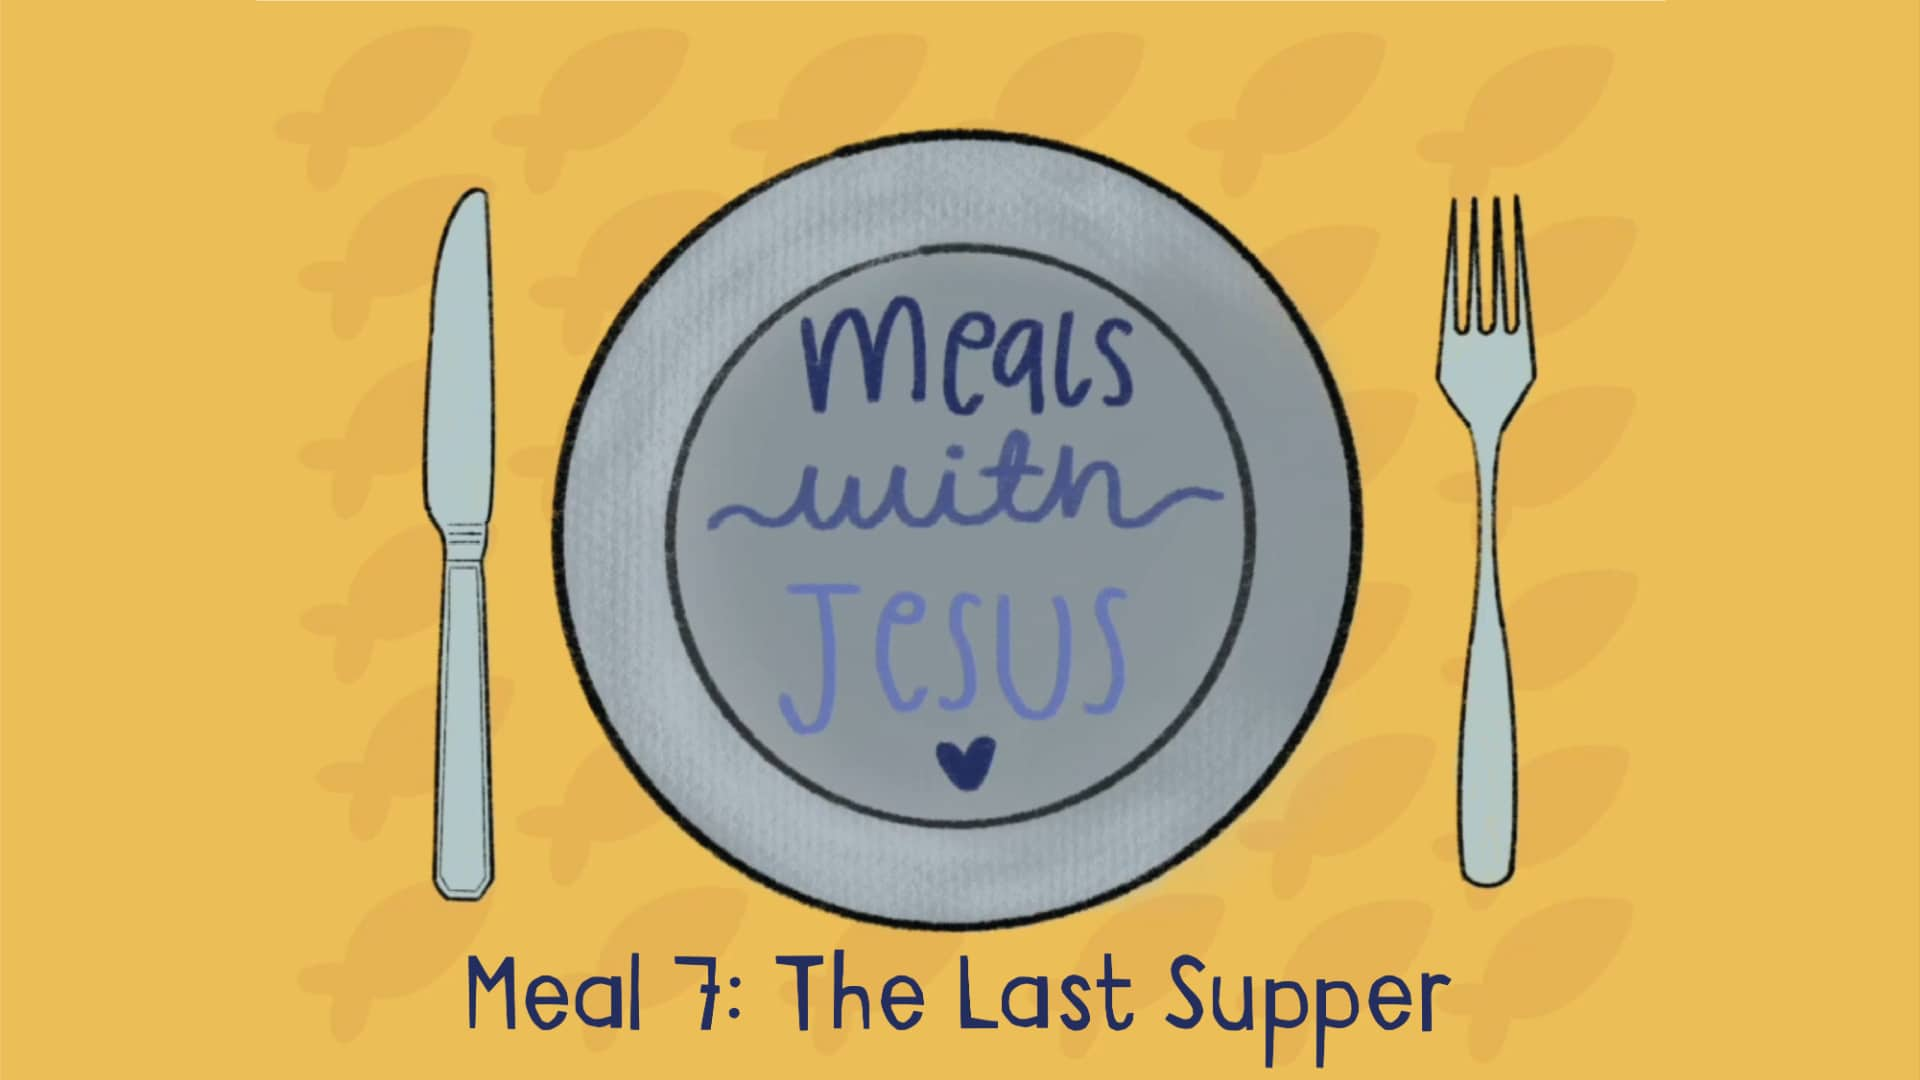 Meals with Jesus: The Last Supper